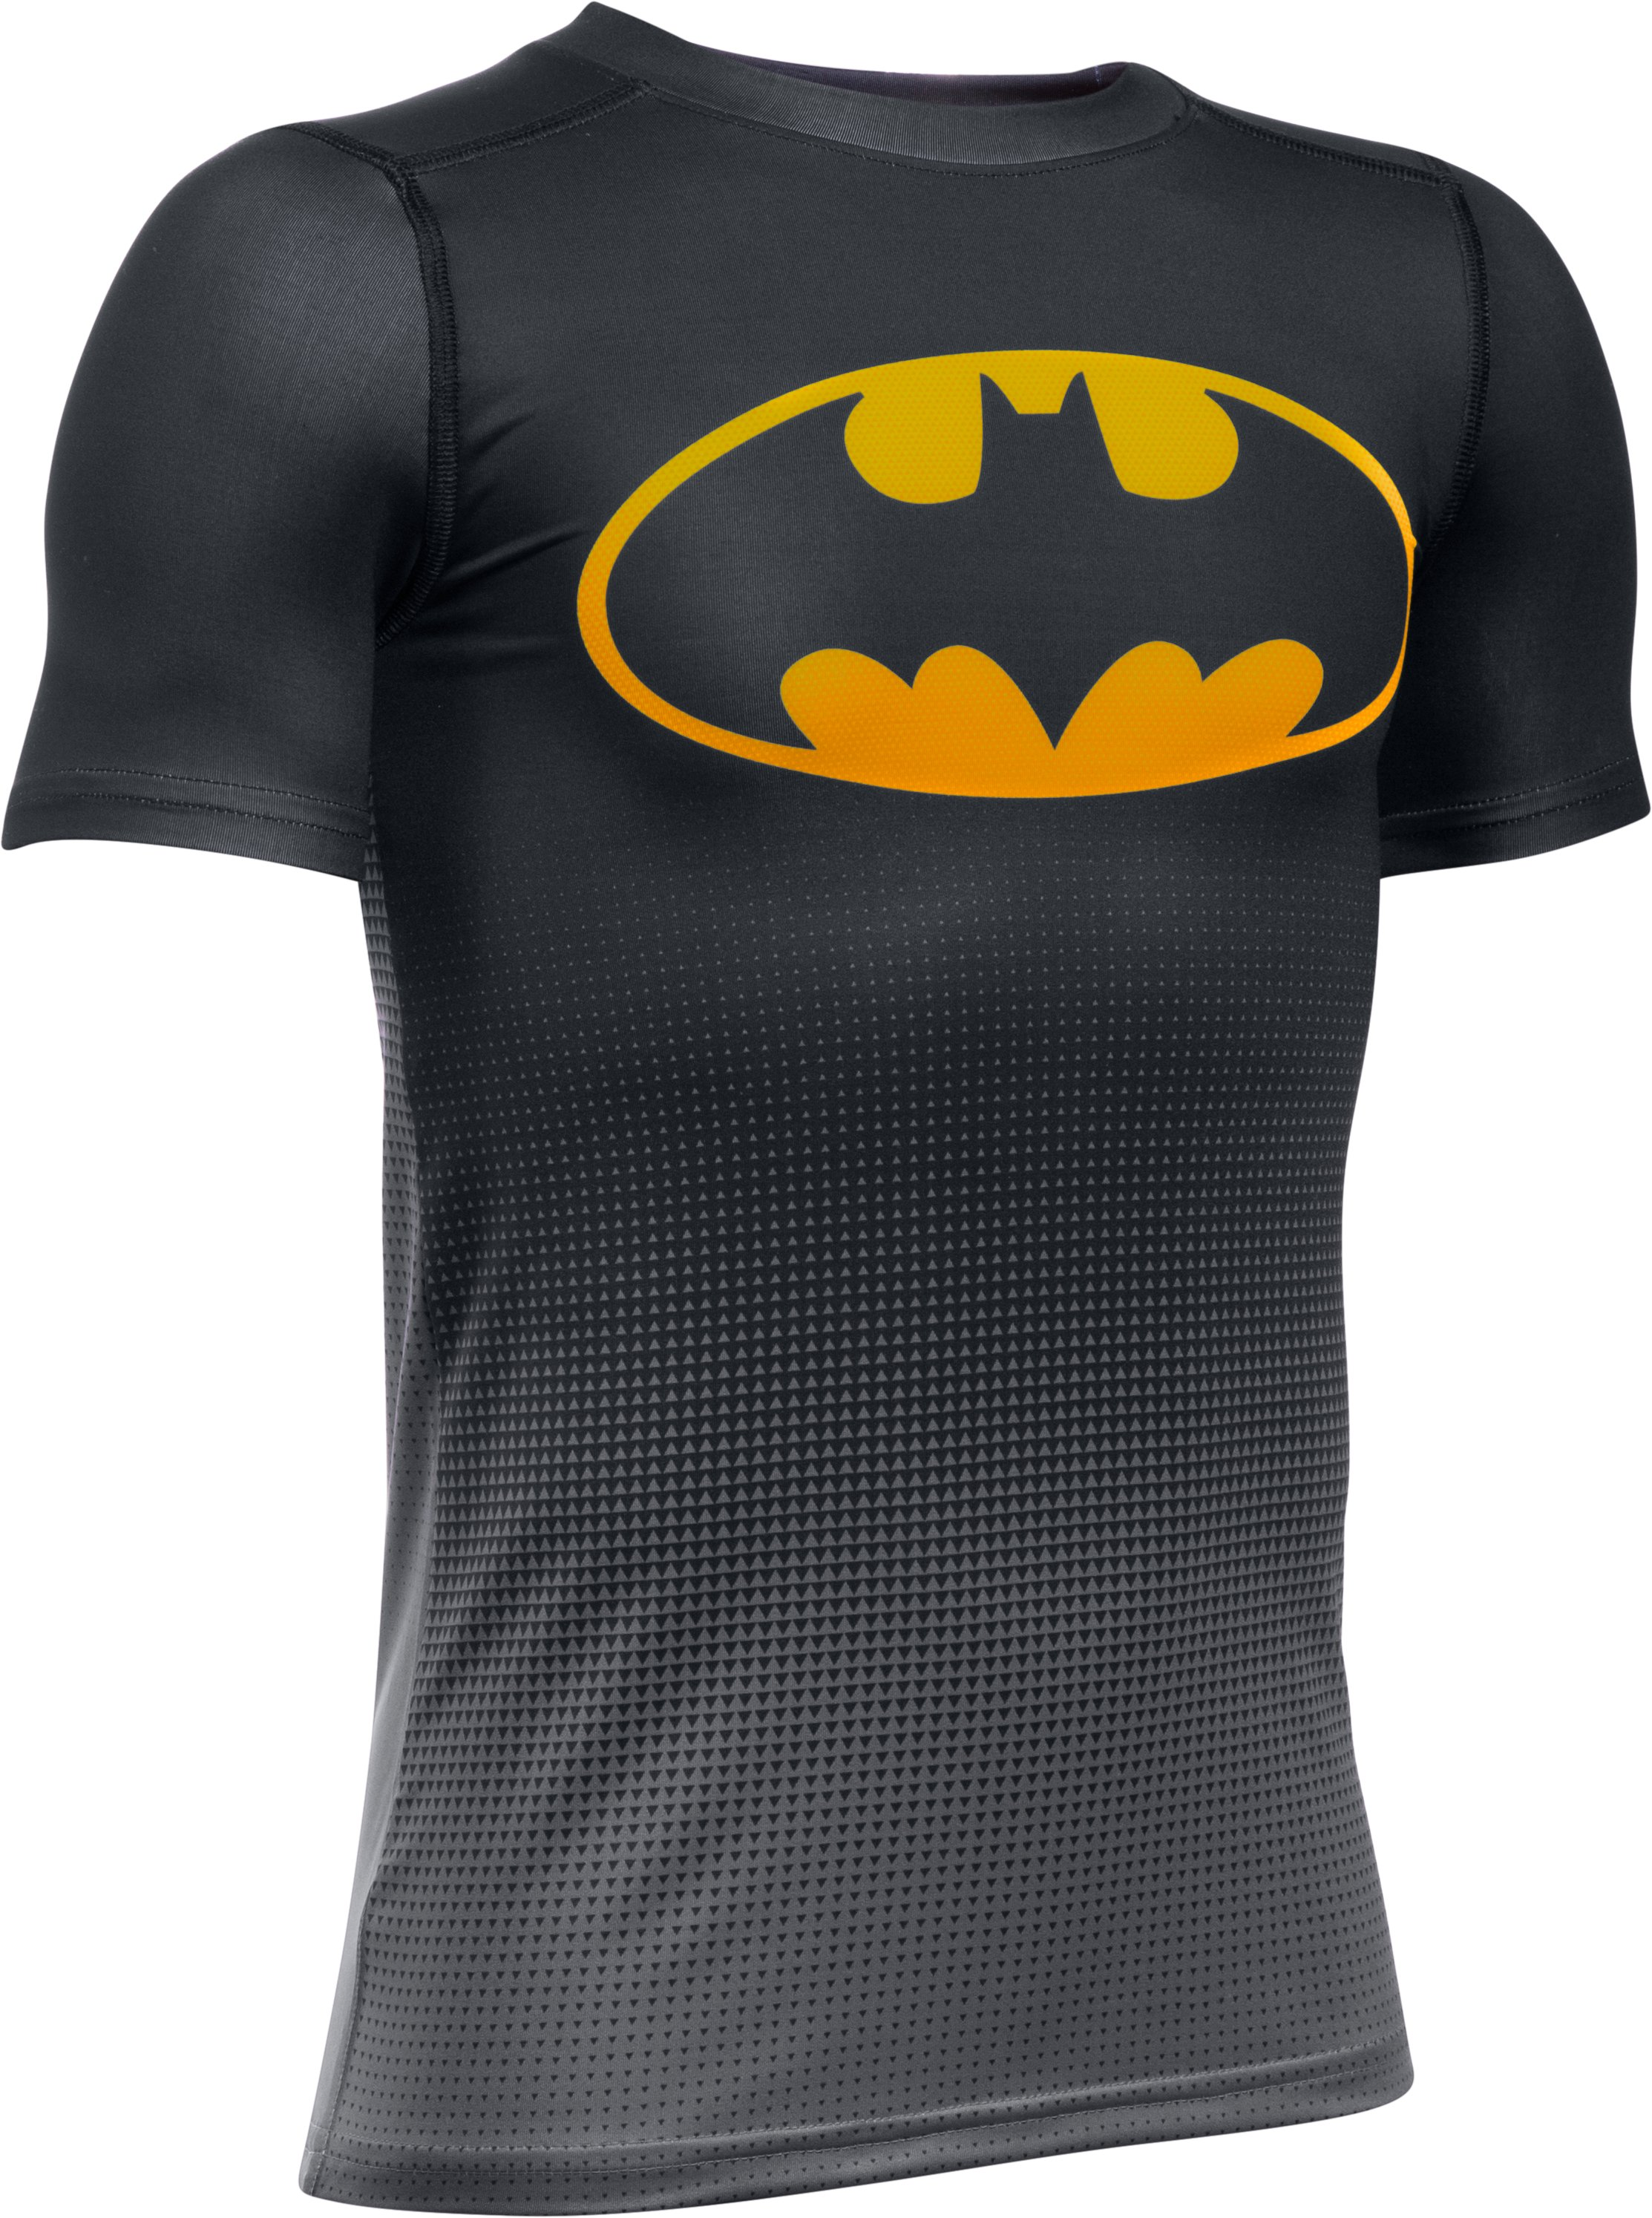 Boys' Under Armour® Alter Ego DC Comics Fitted Baselayer, Black , undefined